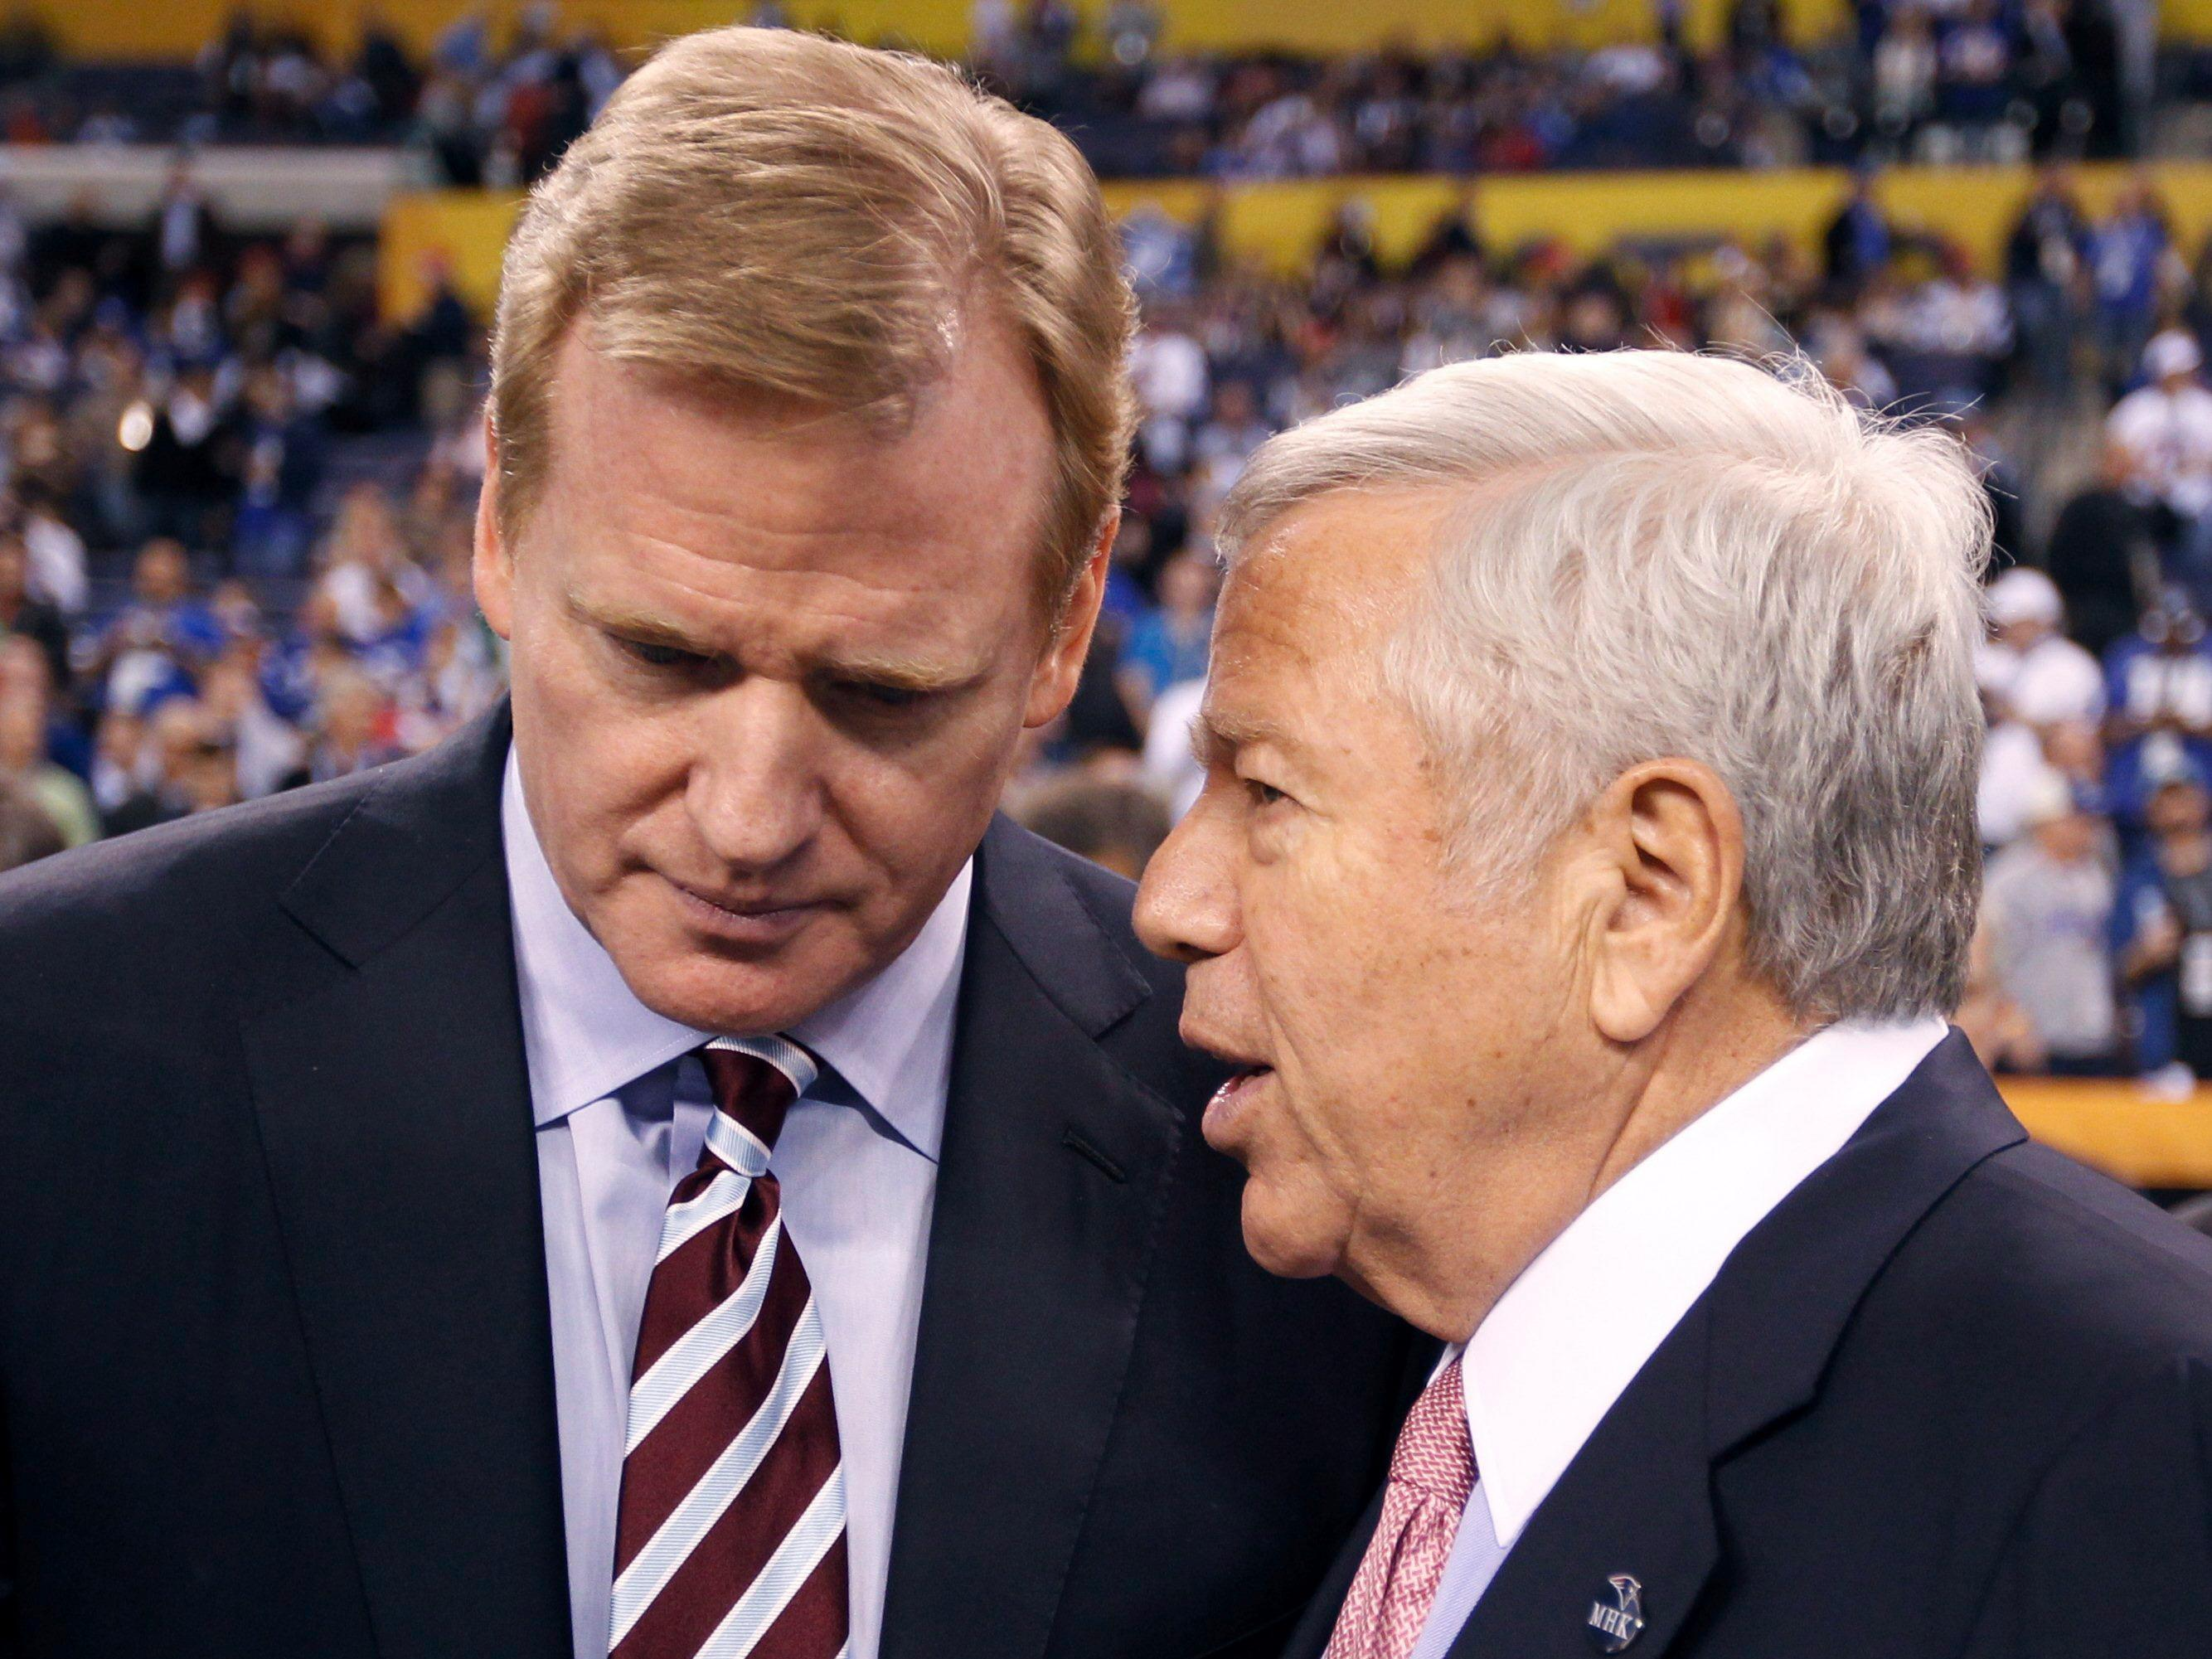 The Patriots made 2 huge concessions to help their Deflategate case, and it completely backfired